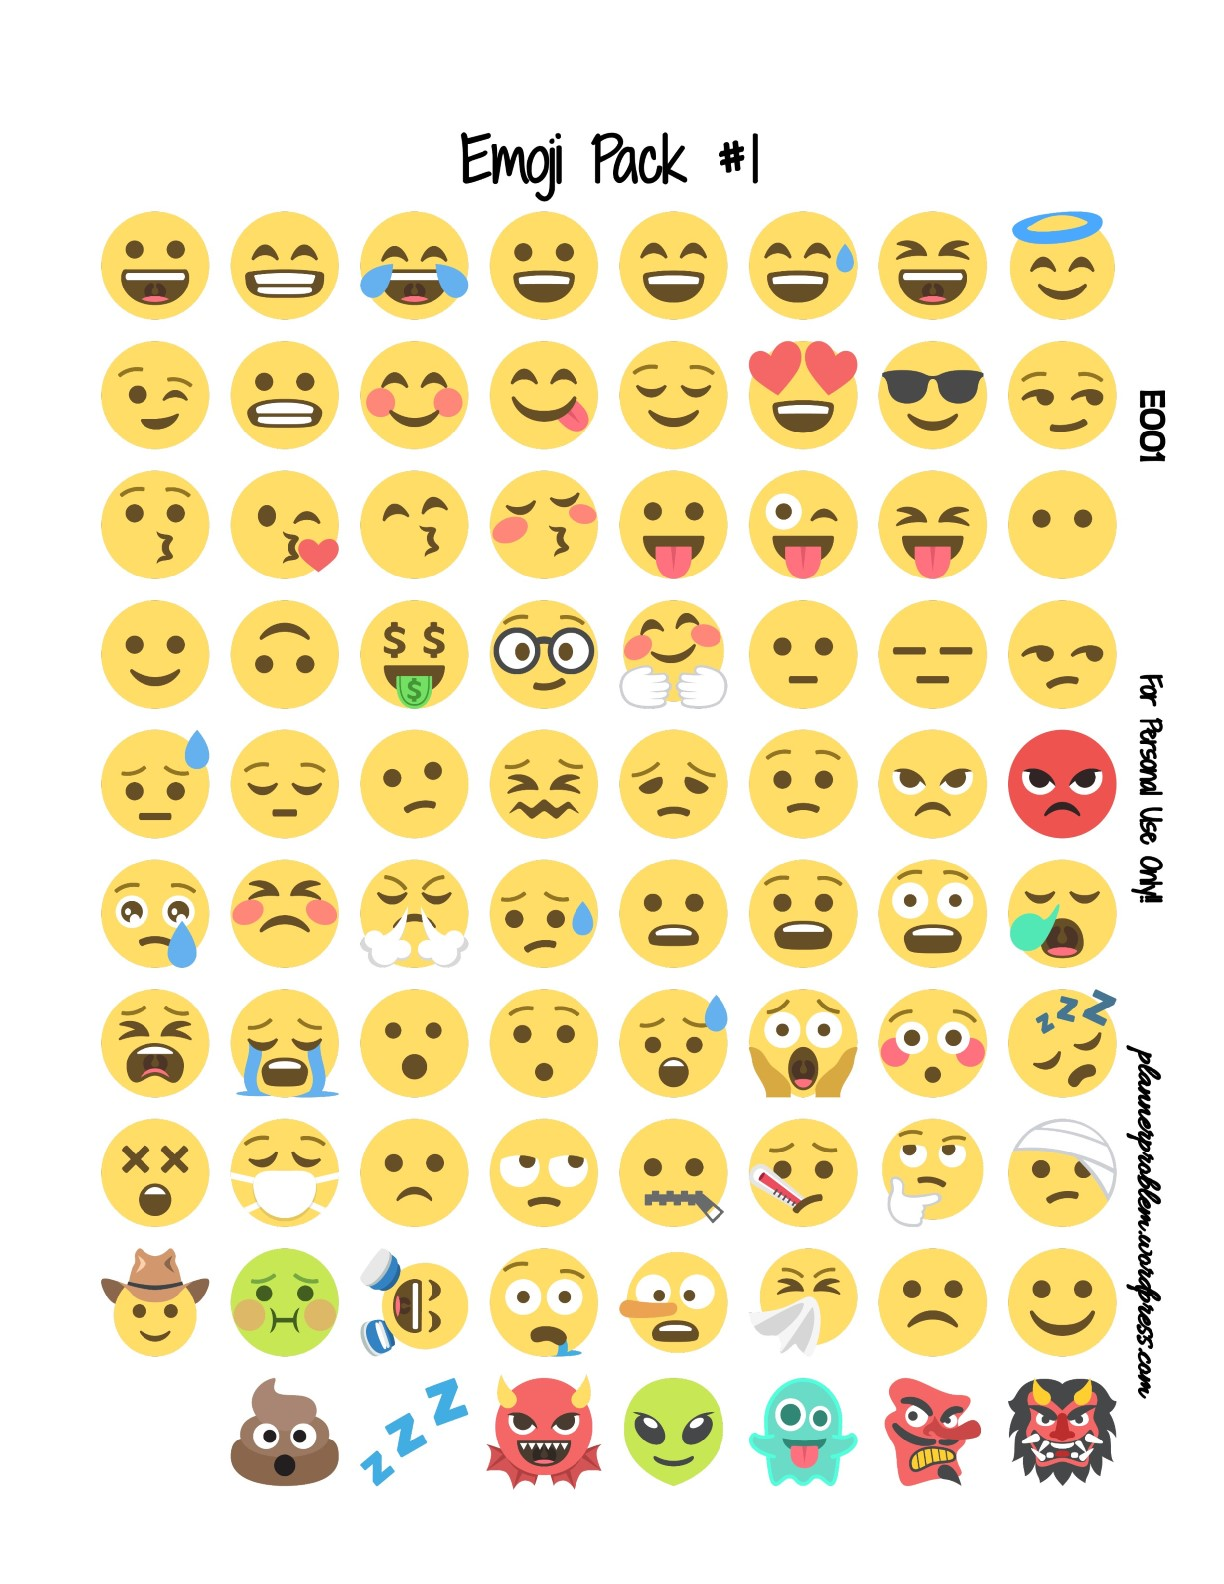 It is an image of Emojis Printable pertaining to popular